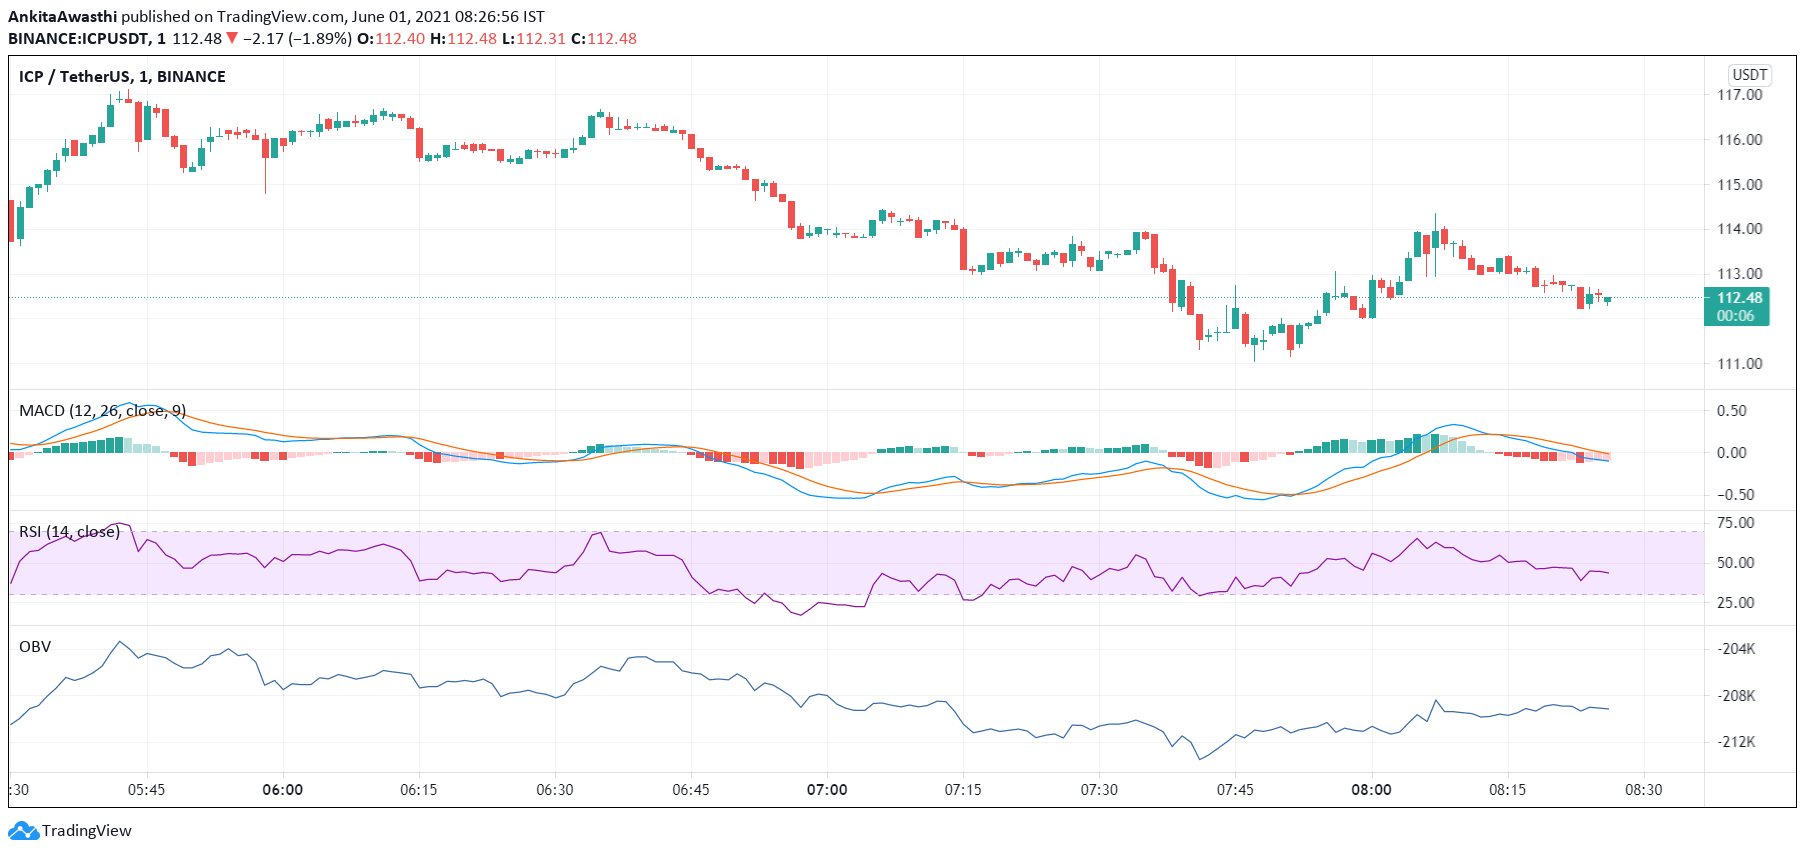 https://platoblockchain.net/wp-content/uploads/2021/06/icp-technical-analysis-price-may-soon-fall-below-support-levels-of-110-52.png